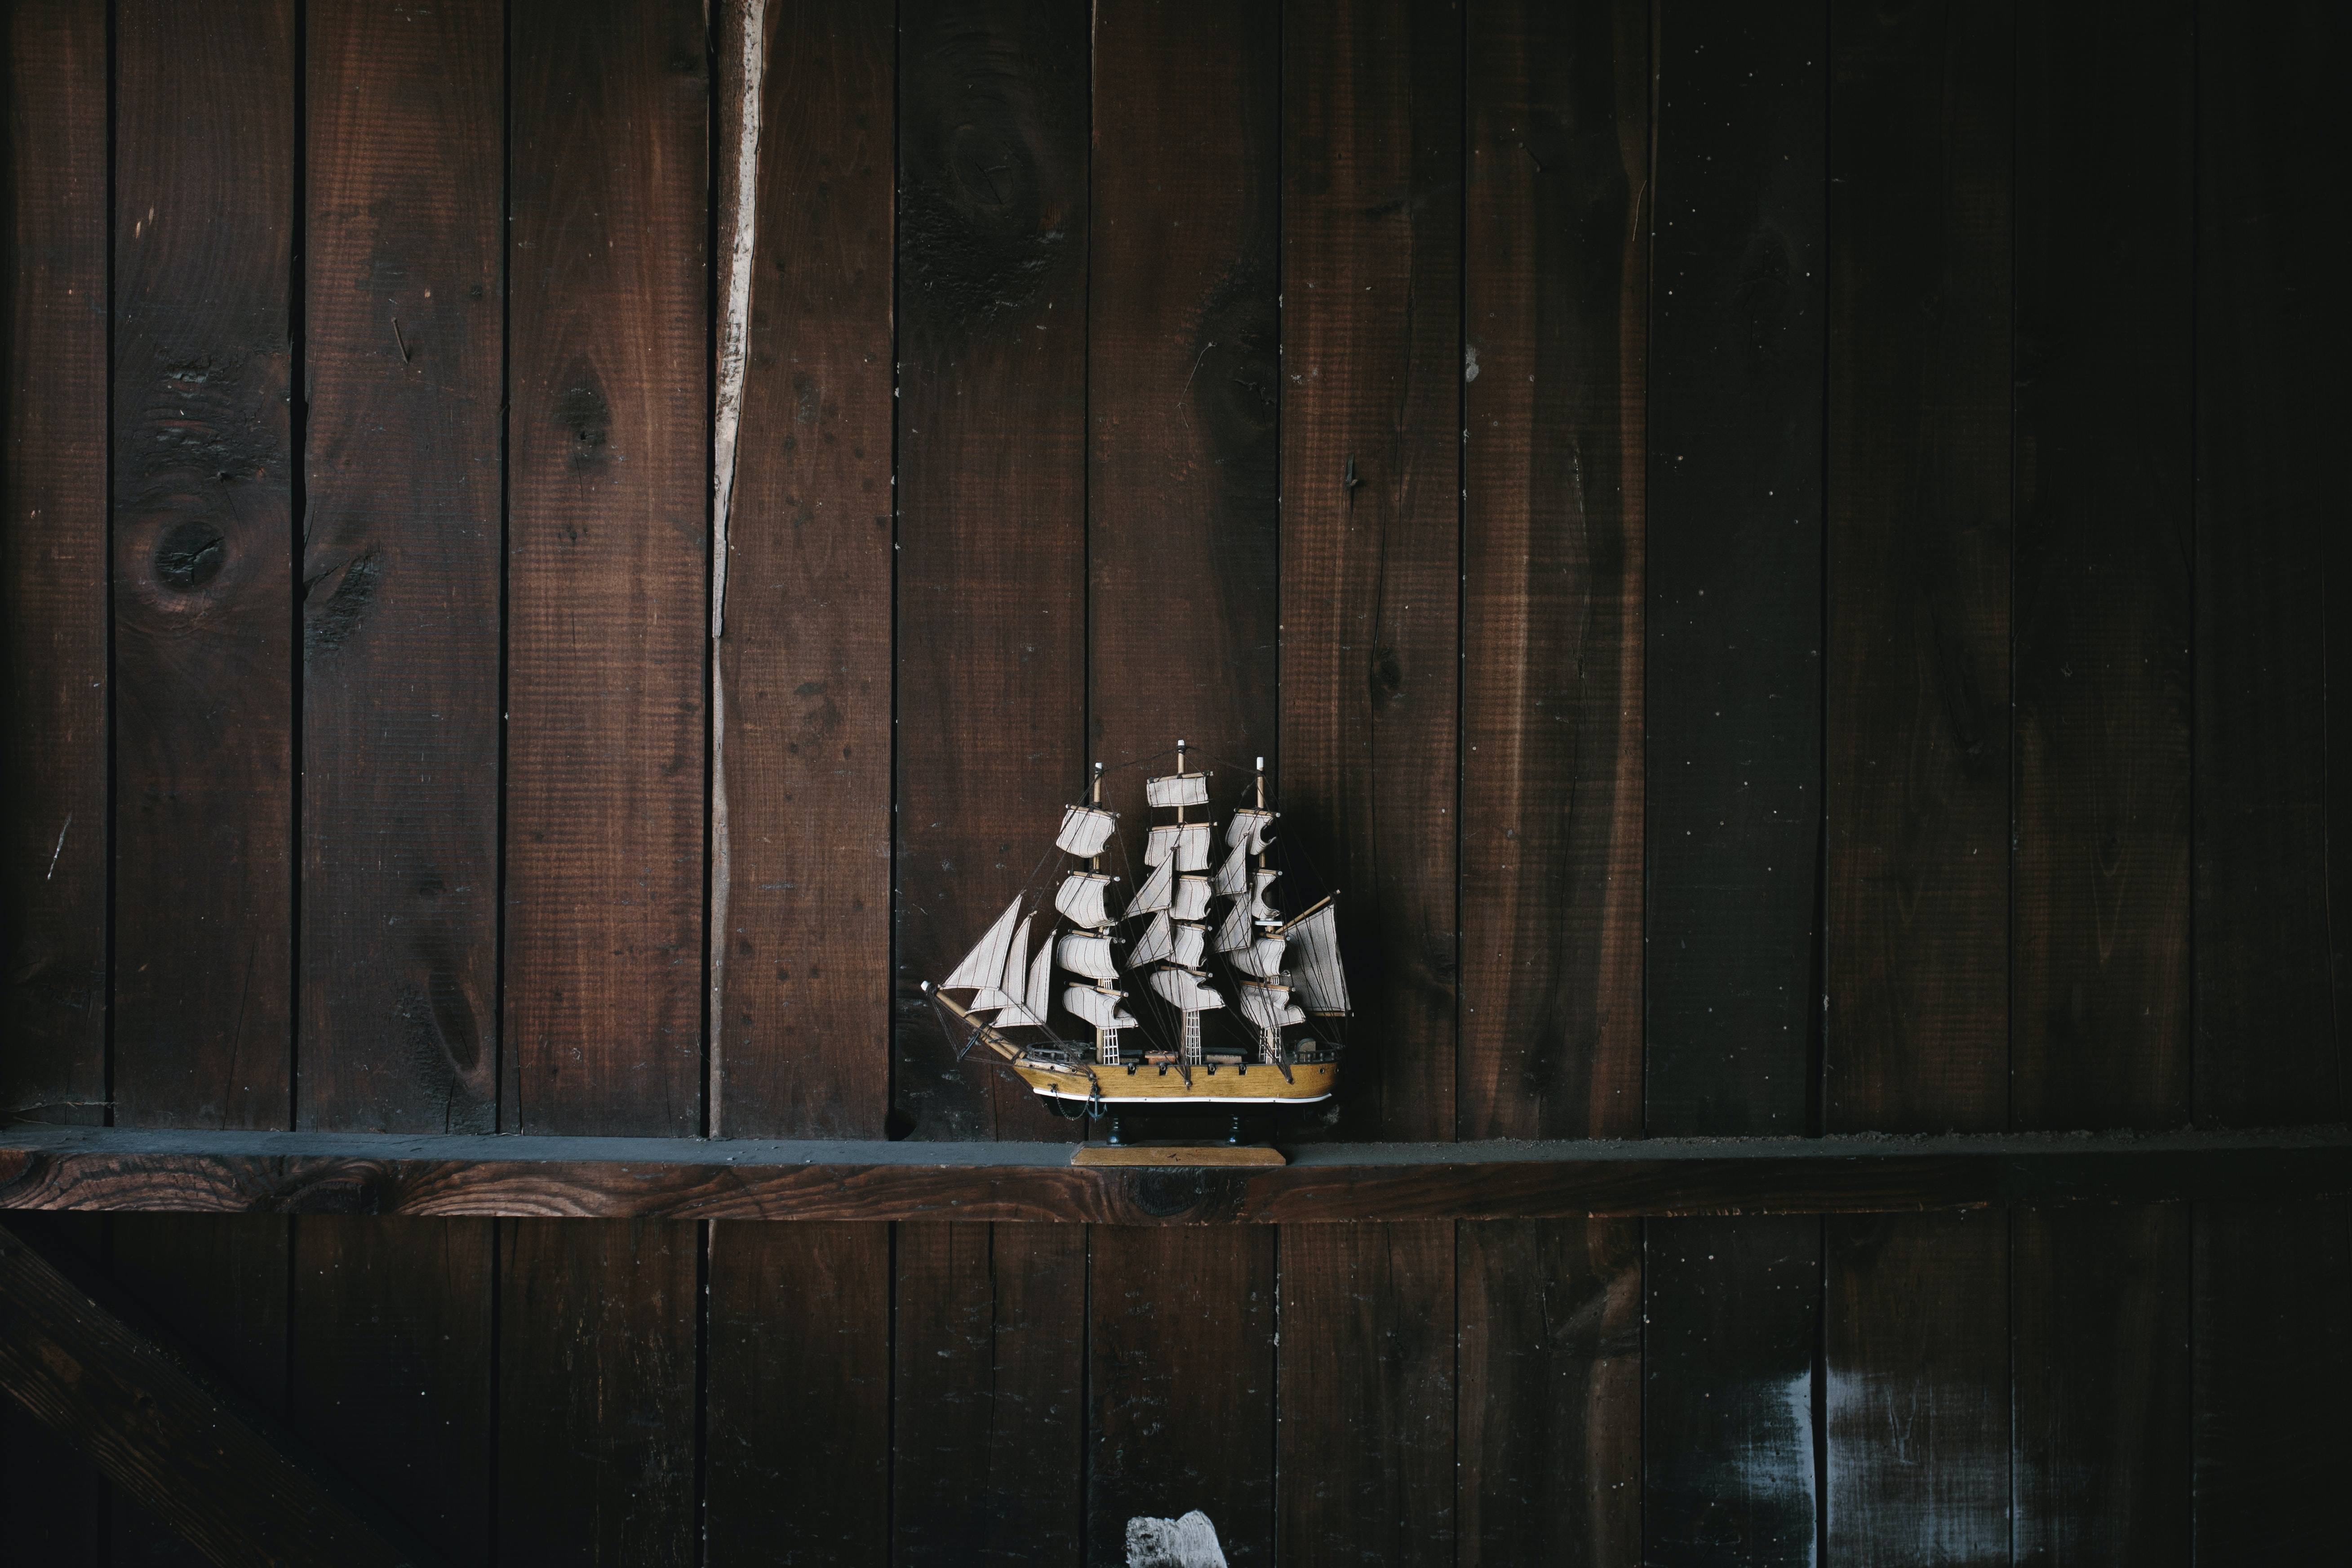 black, brown, and white galleon ship scale model on brown wooden shelf